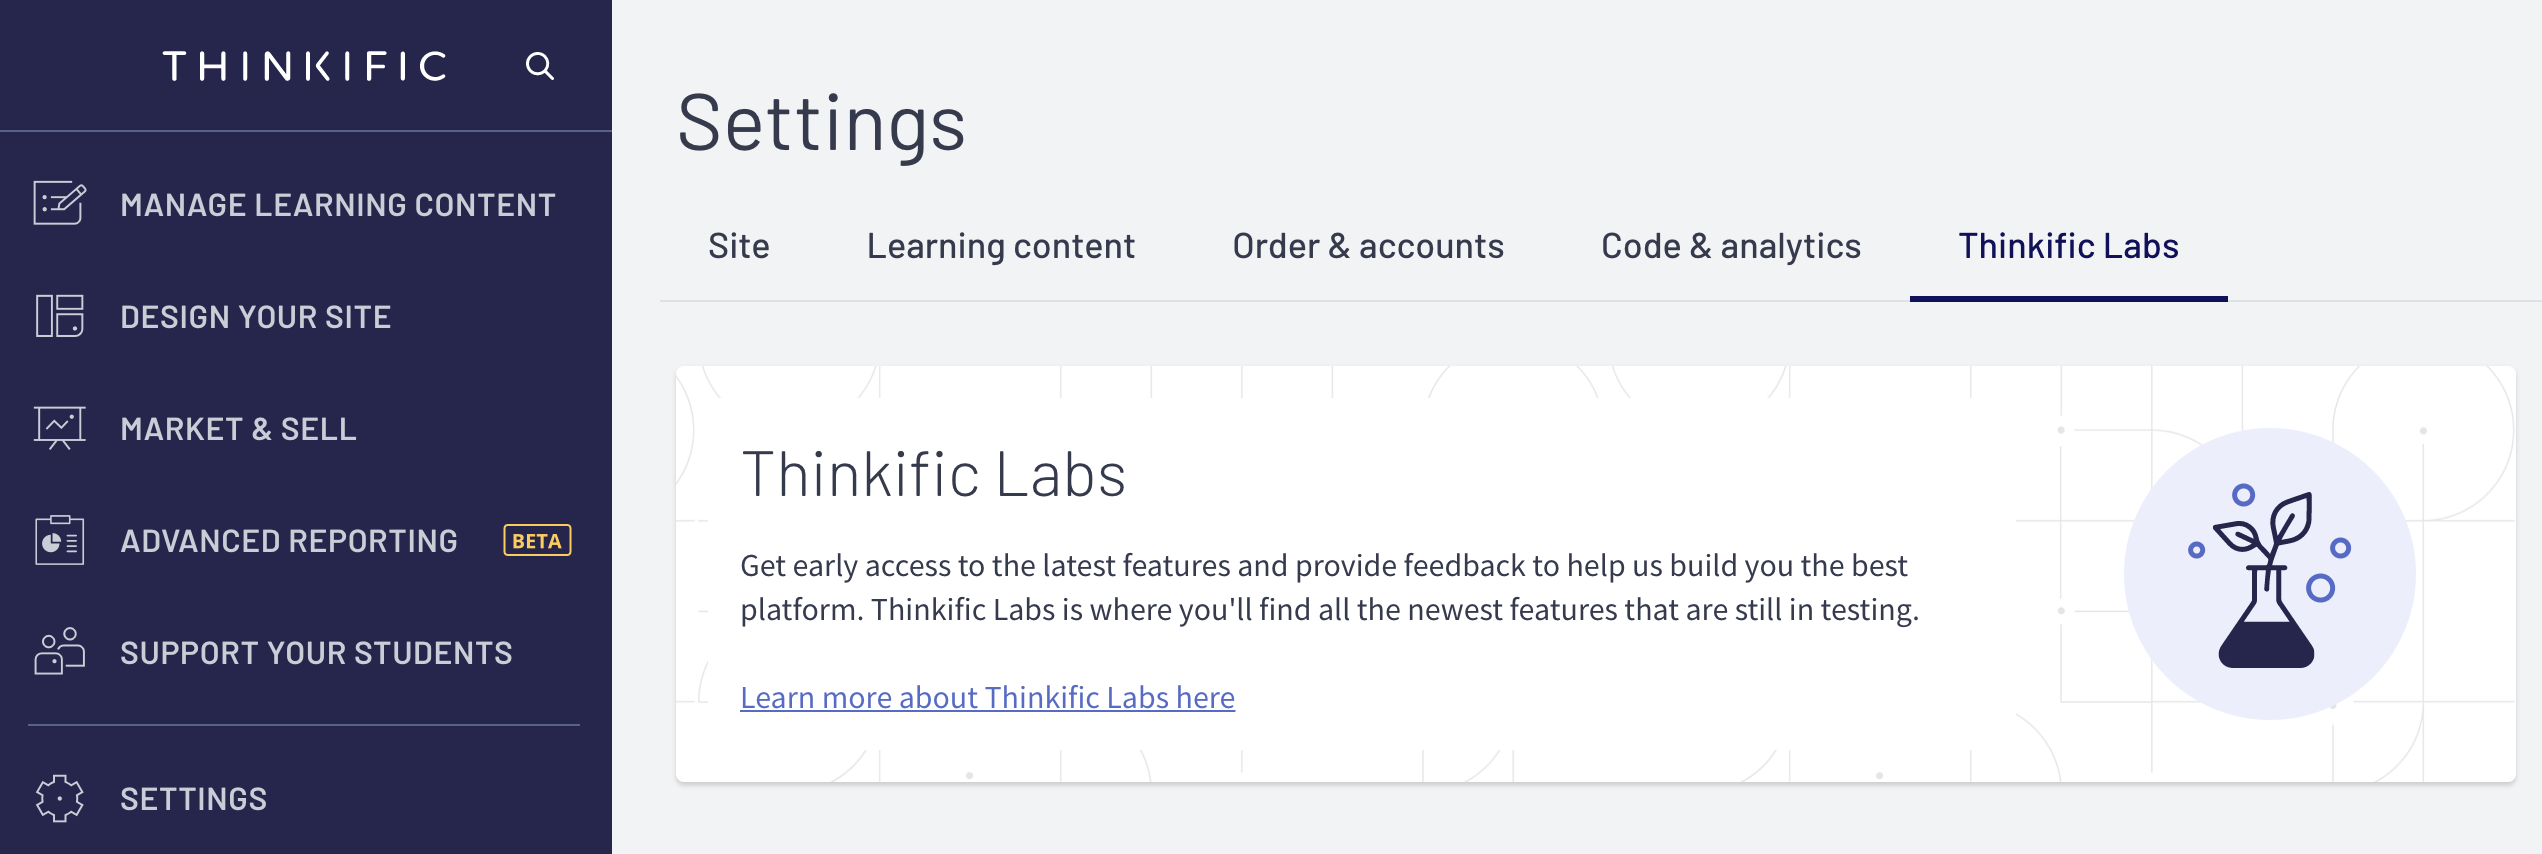 Thinkific_Labs.png